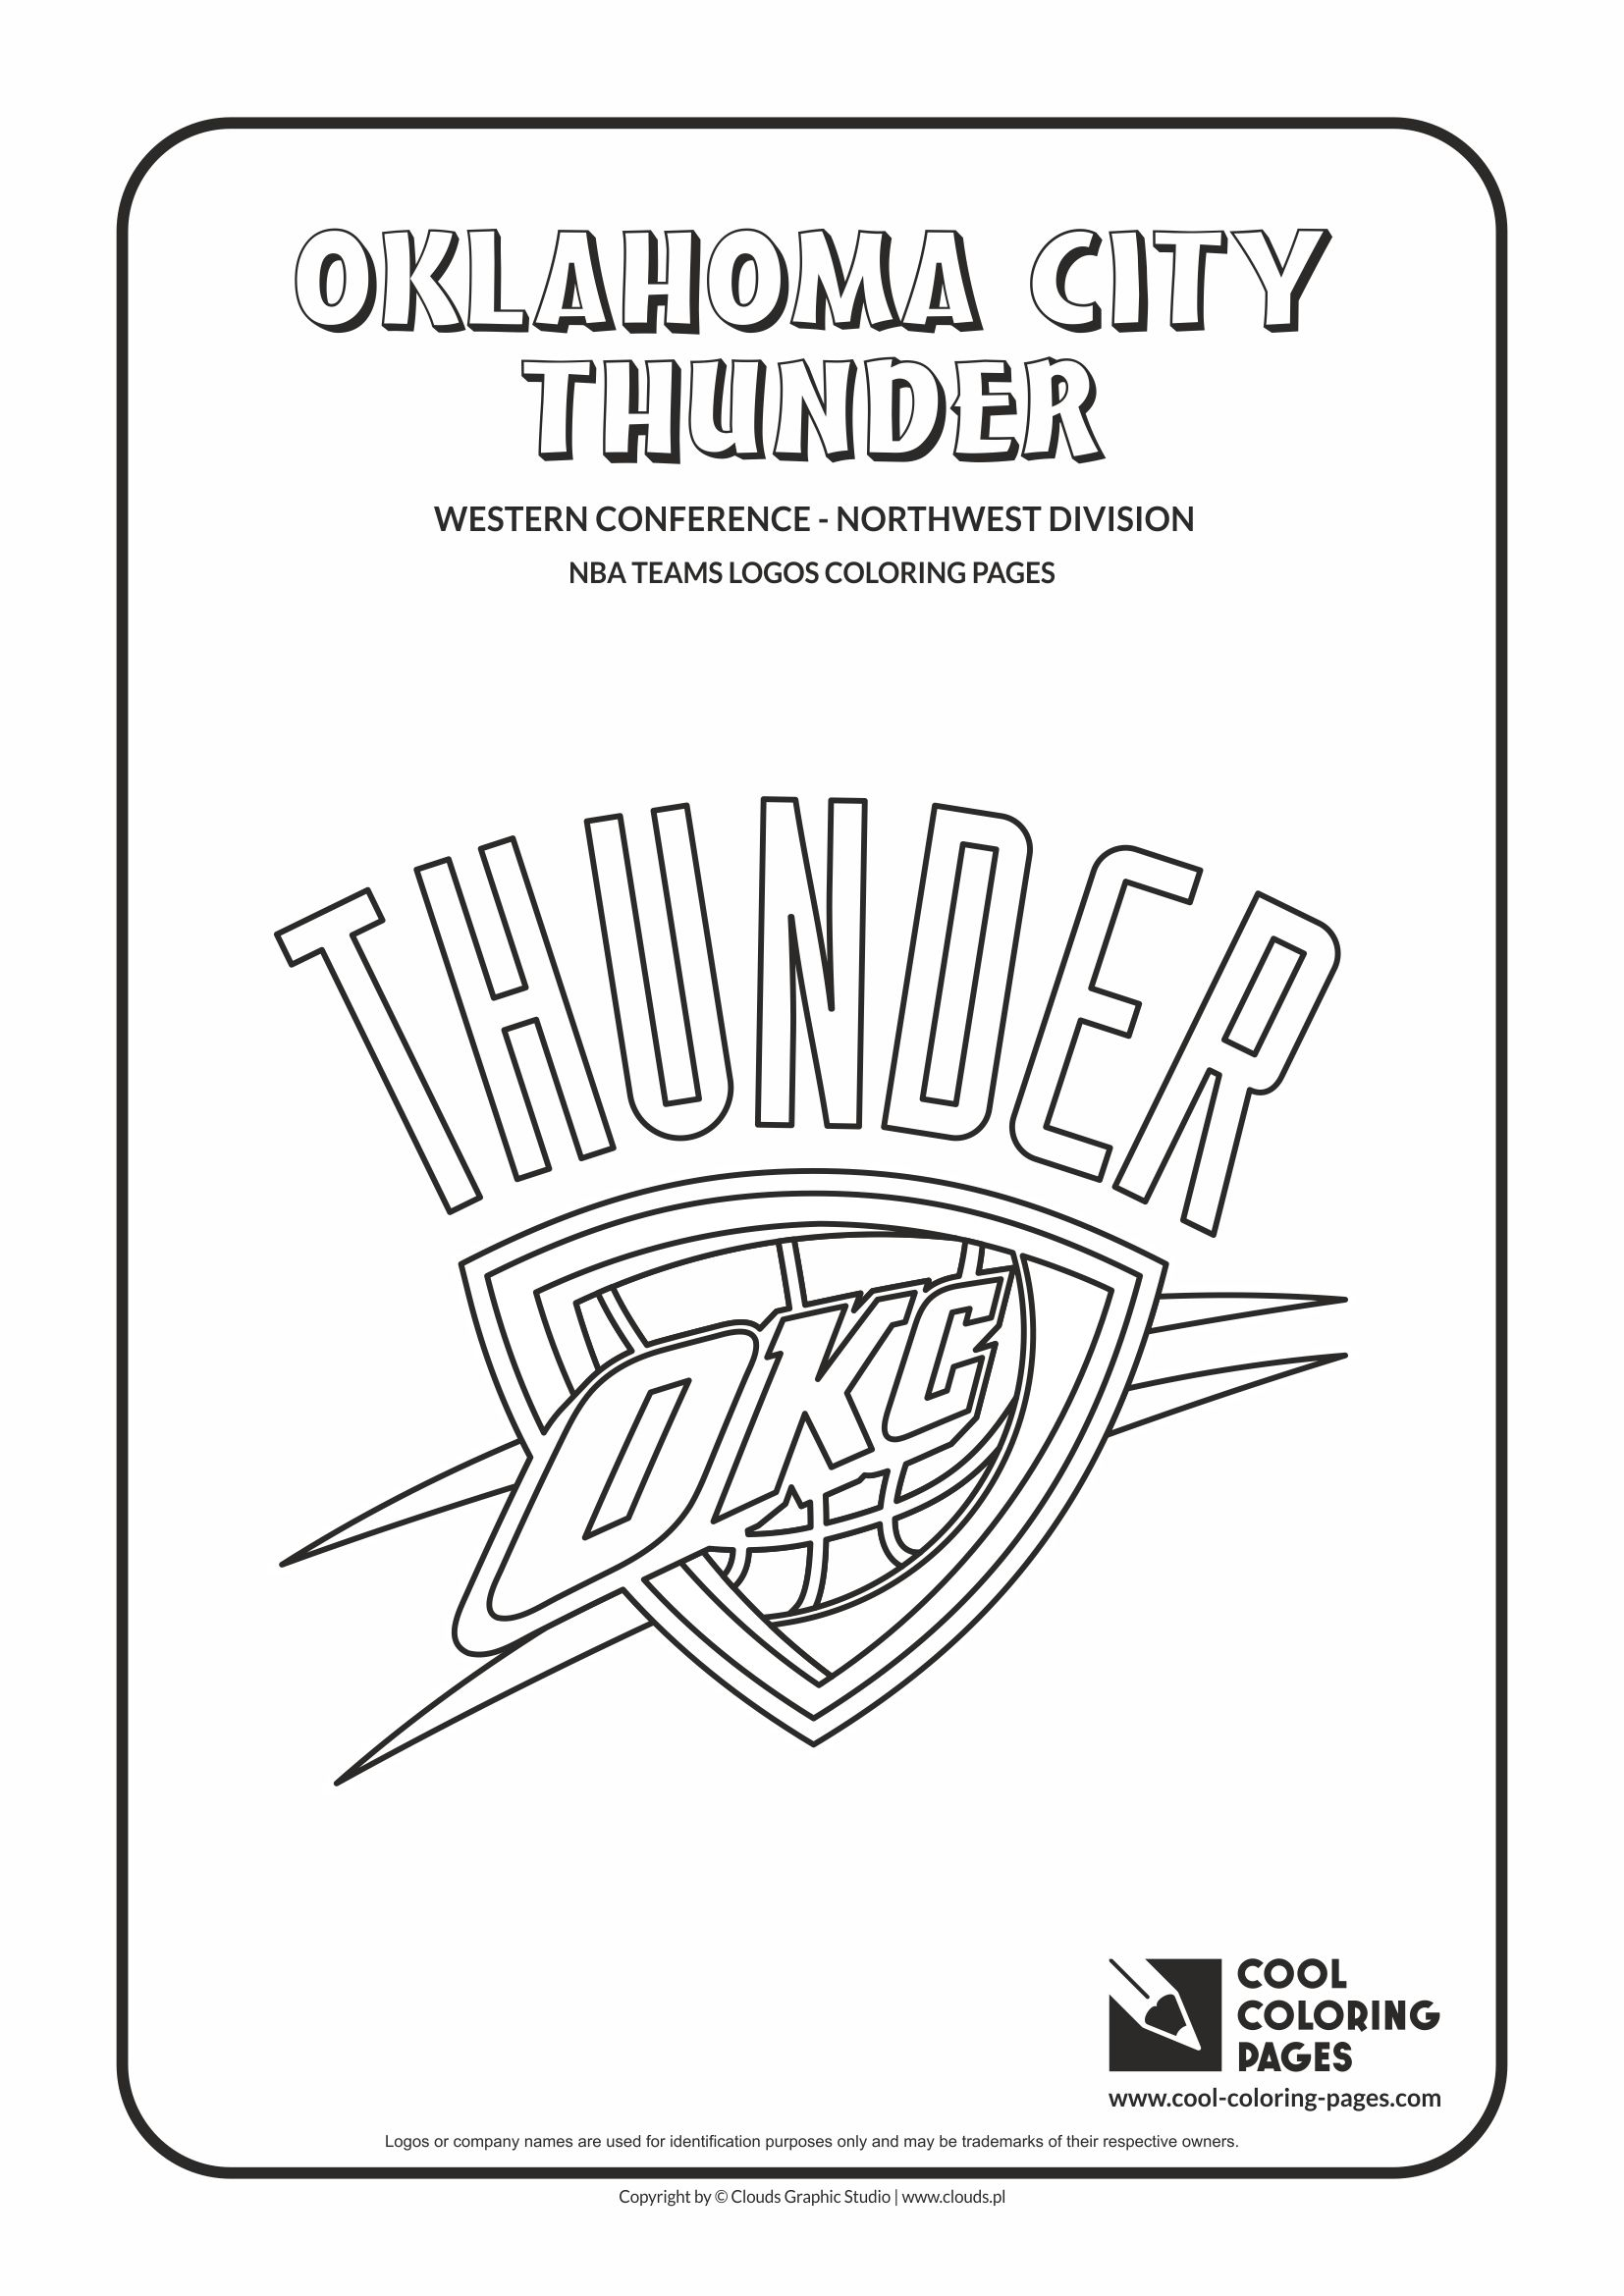 oklahoma city thunder u2013 nba basketball teams logos coloring pages